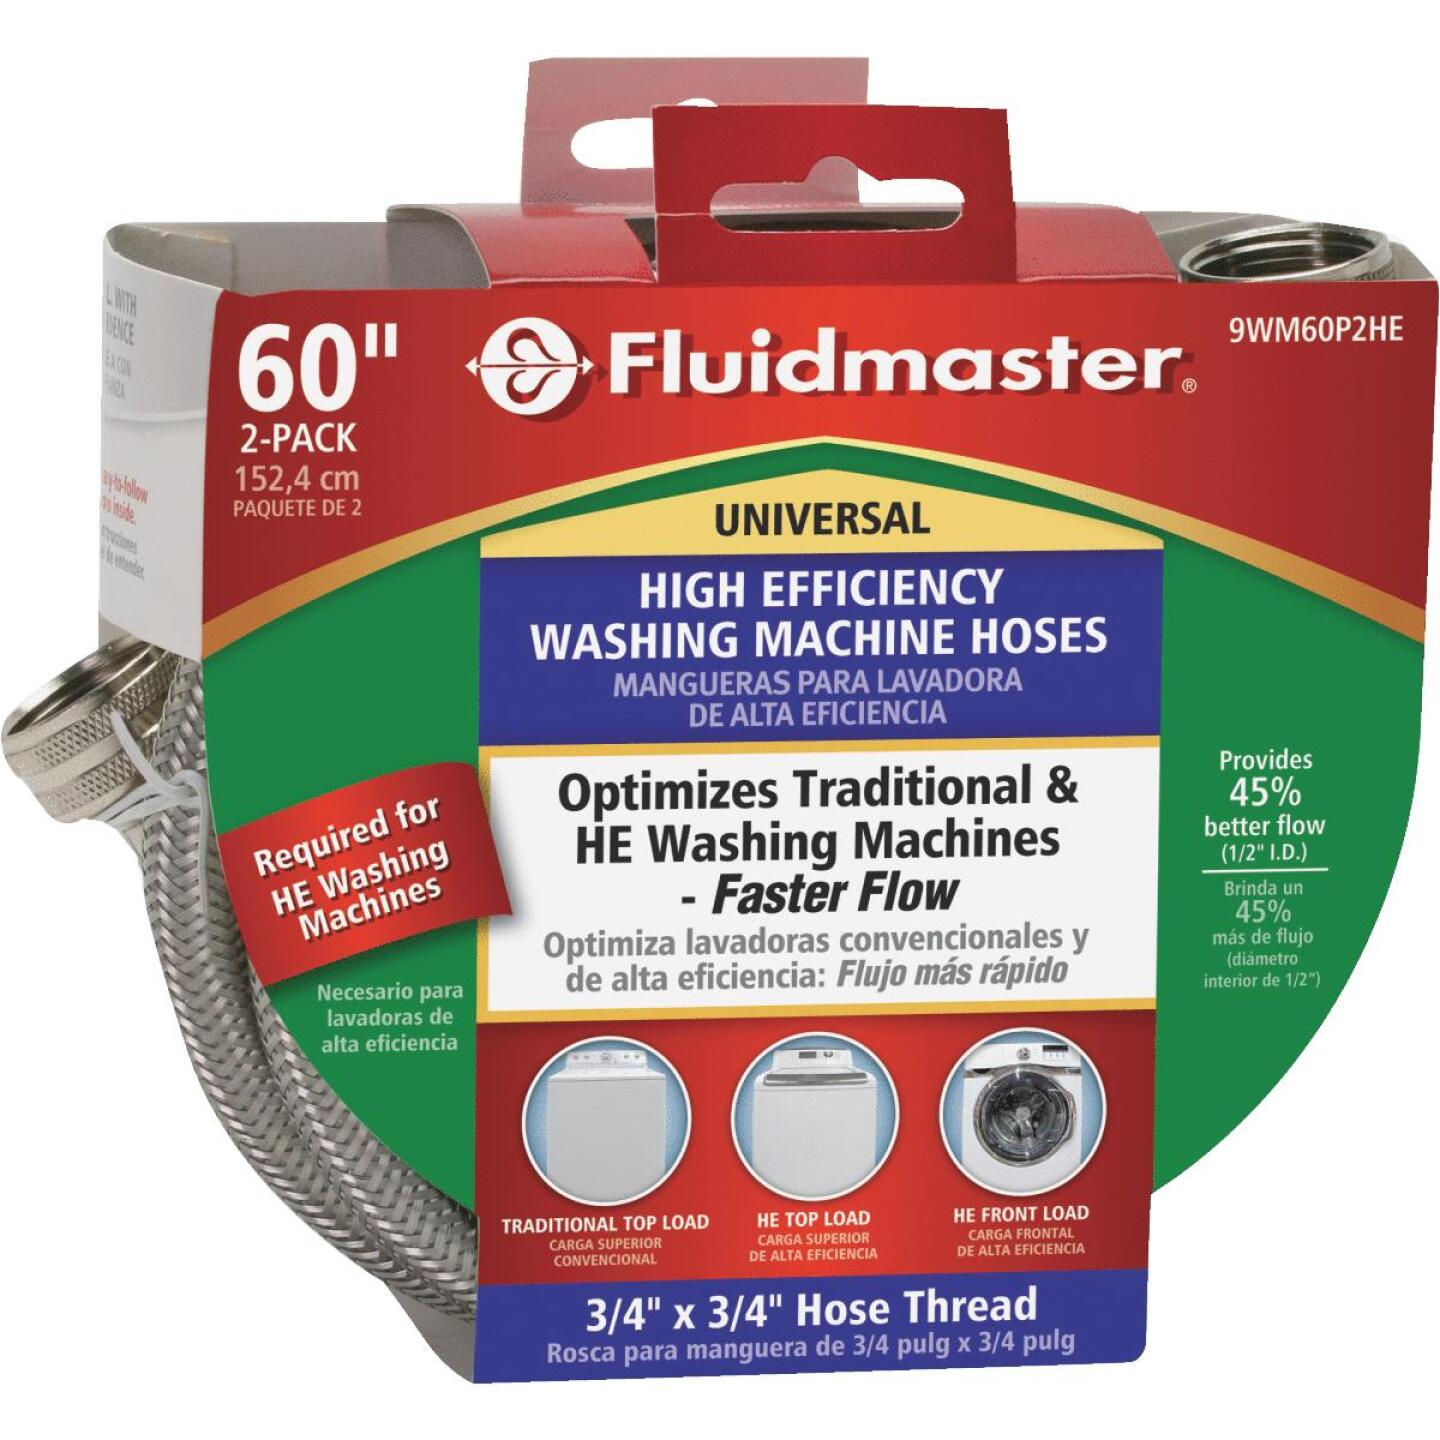 Fluidmaster 3/4 x 3/4 In. Hose Fitting x 60 In. L Braided Stainless Steel High Efficiency Washing Machine Hose(2-Pack) Image 4